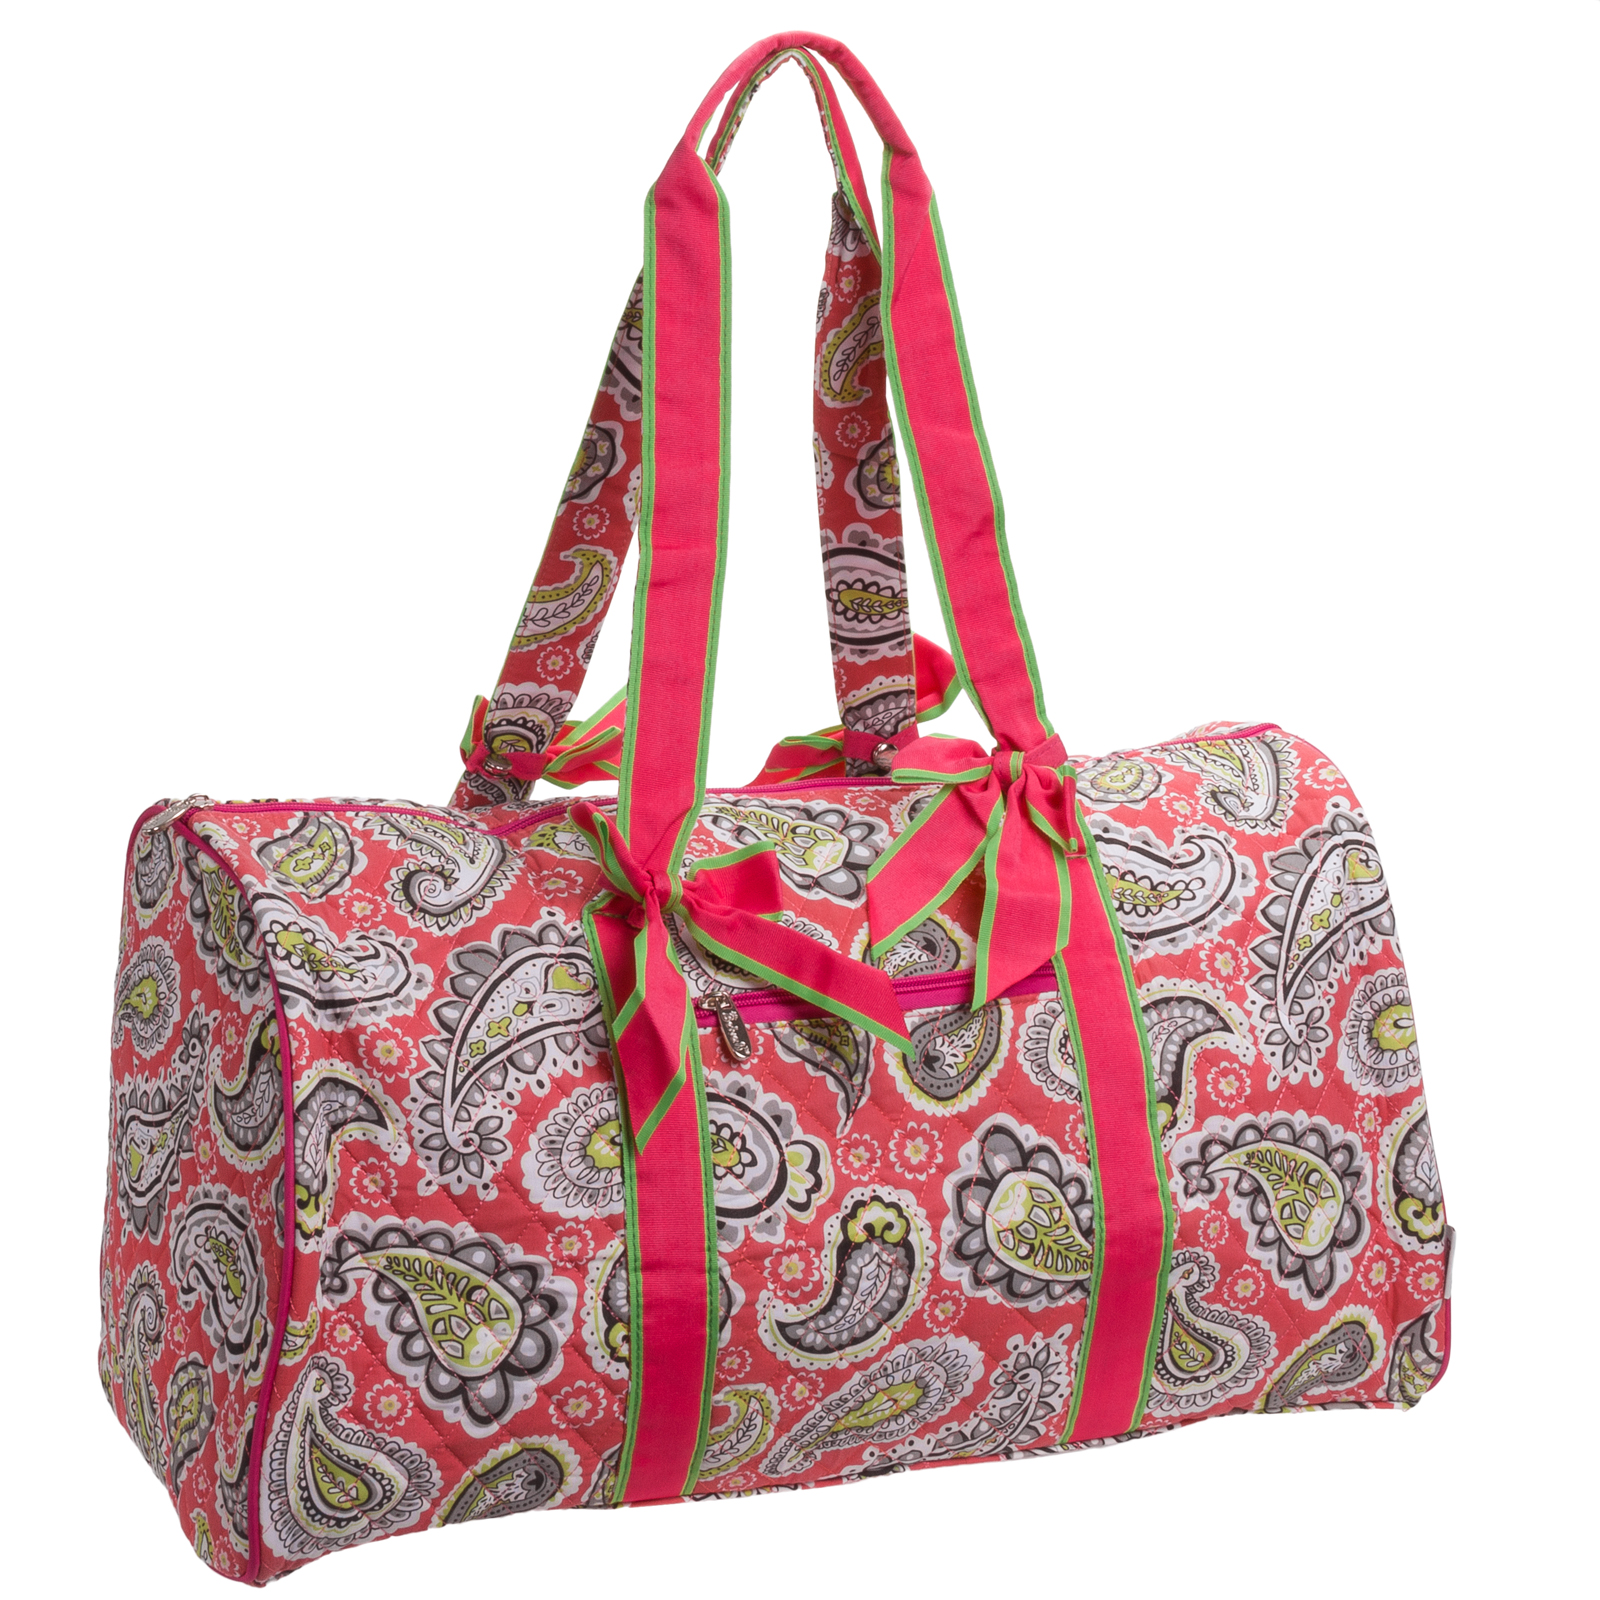 belvah quilted fuschia paisley large duffle bag travel